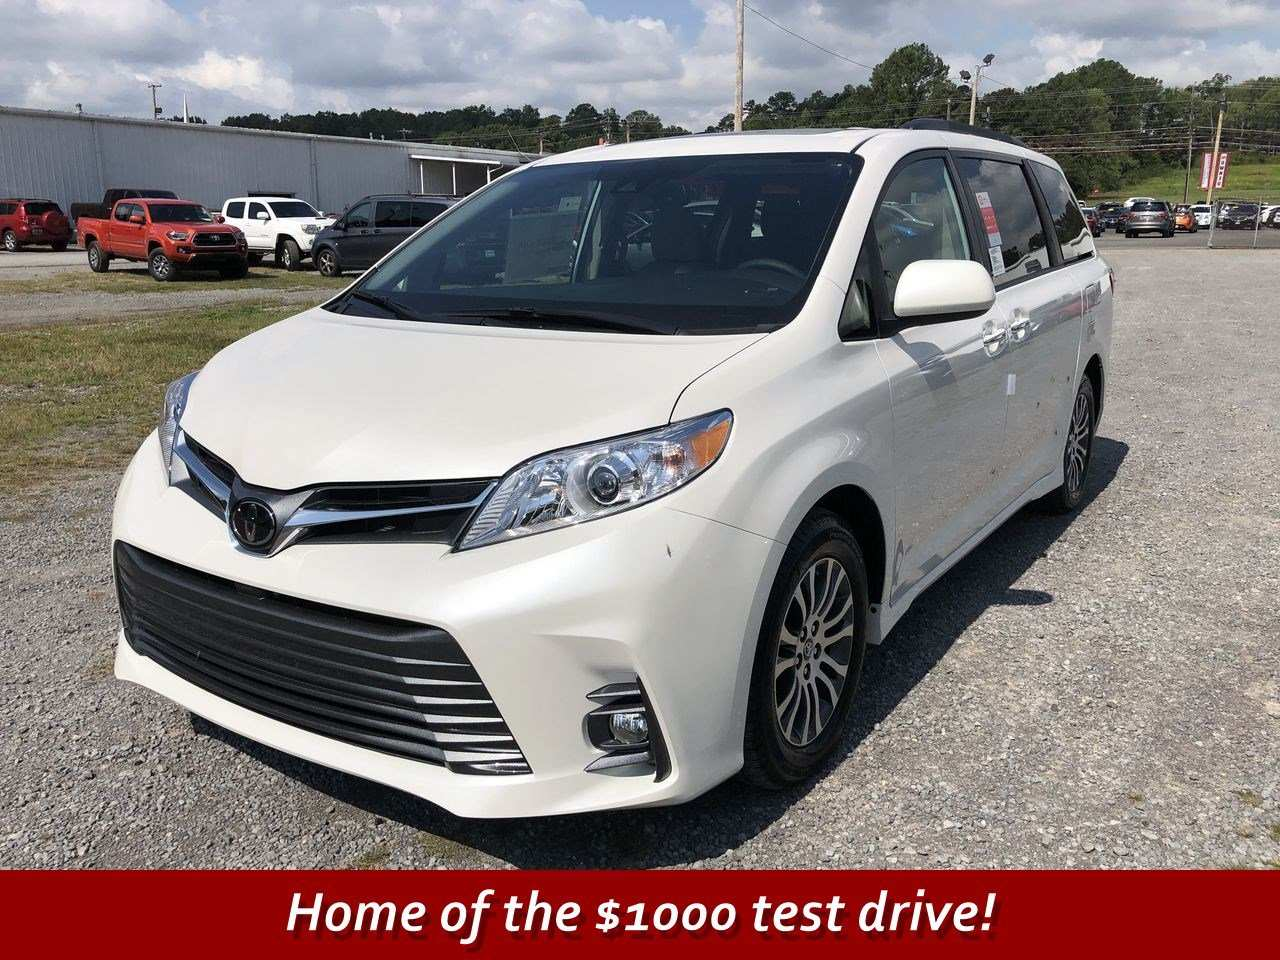 31 Concept of 2019 Toyota Sienna Images with 2019 Toyota Sienna